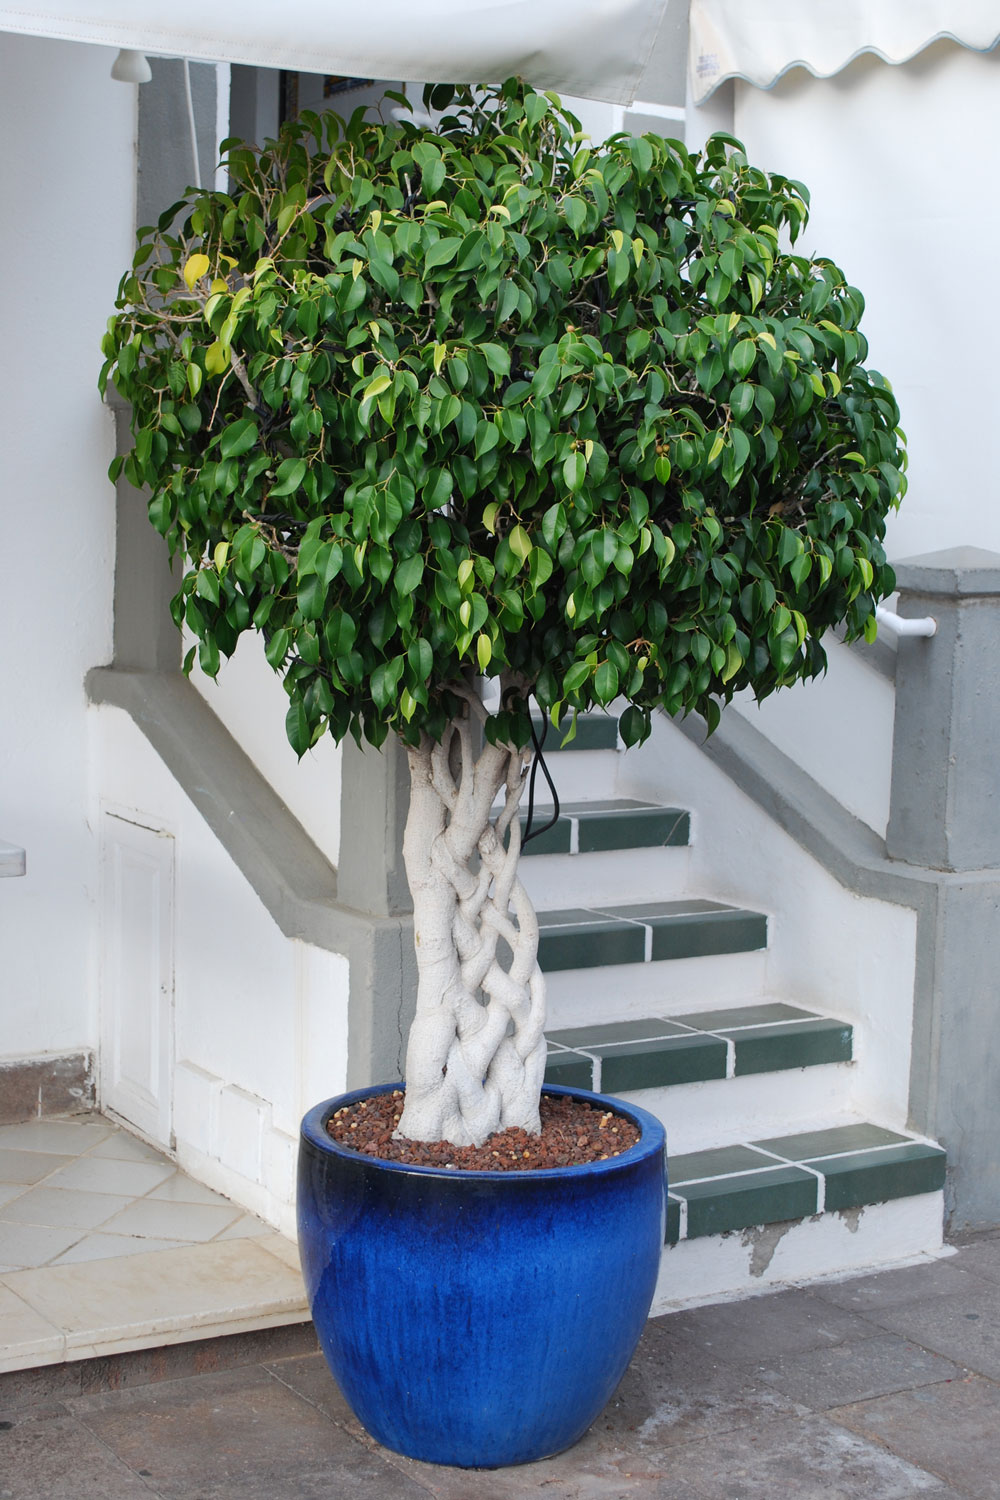 Ficus benjamina with braided stem growth in the blue pot